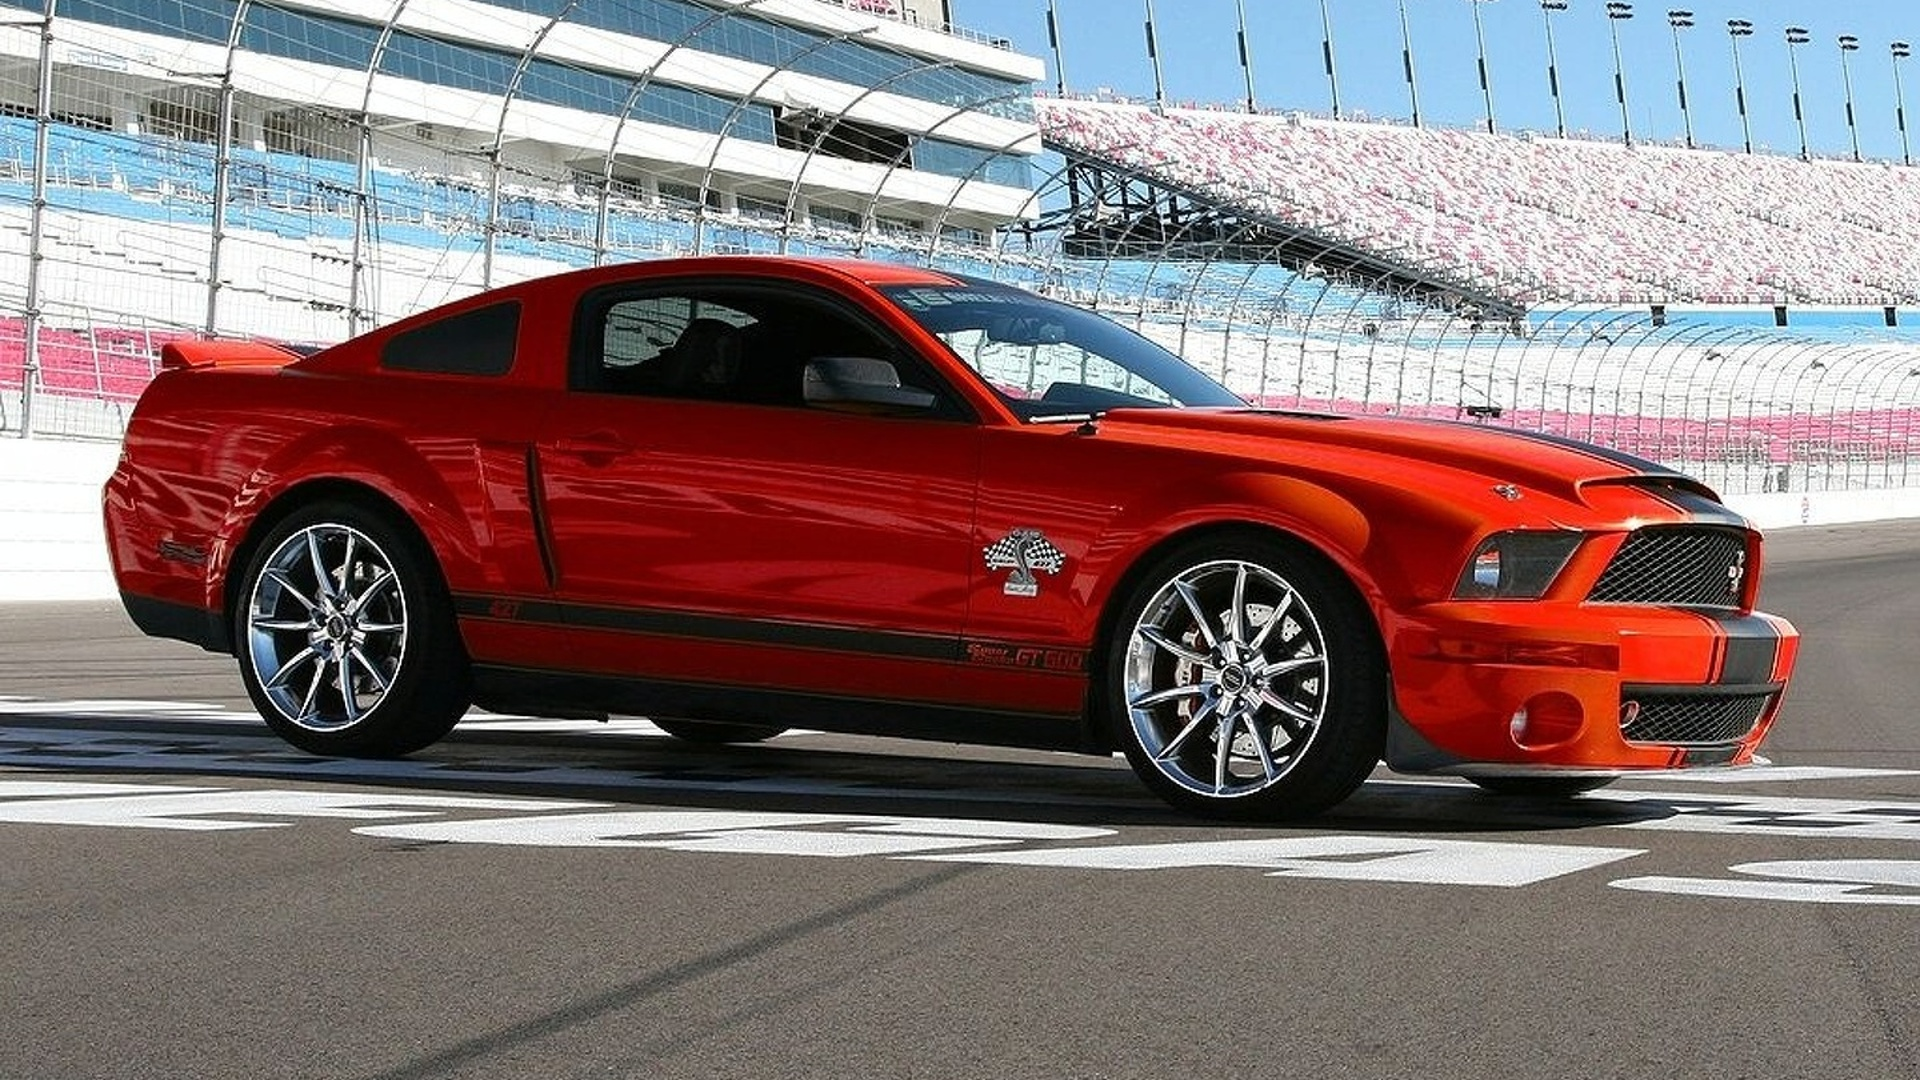 2009 Ford Mustang Shelby GT500 Super Snake